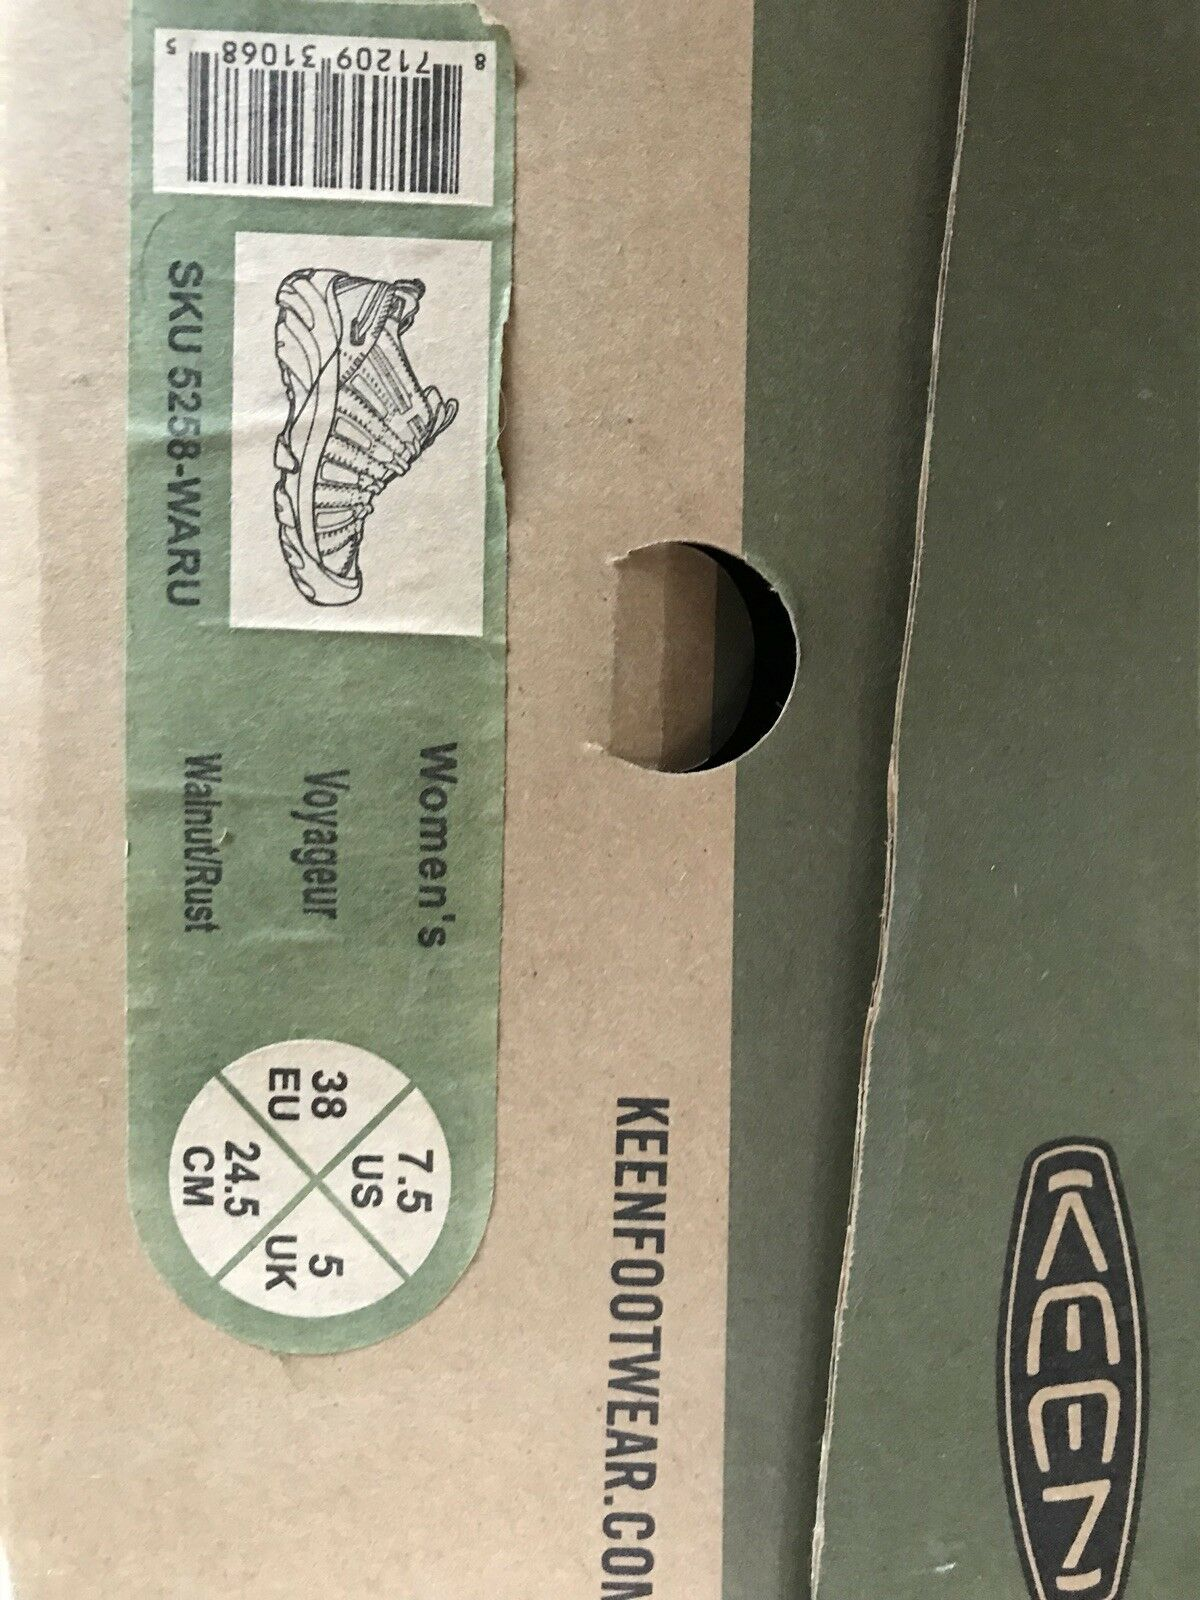 KEEN VOYAGER WOMEN'S HIKING SHOES NEW IN BOX walnut rust 7.5